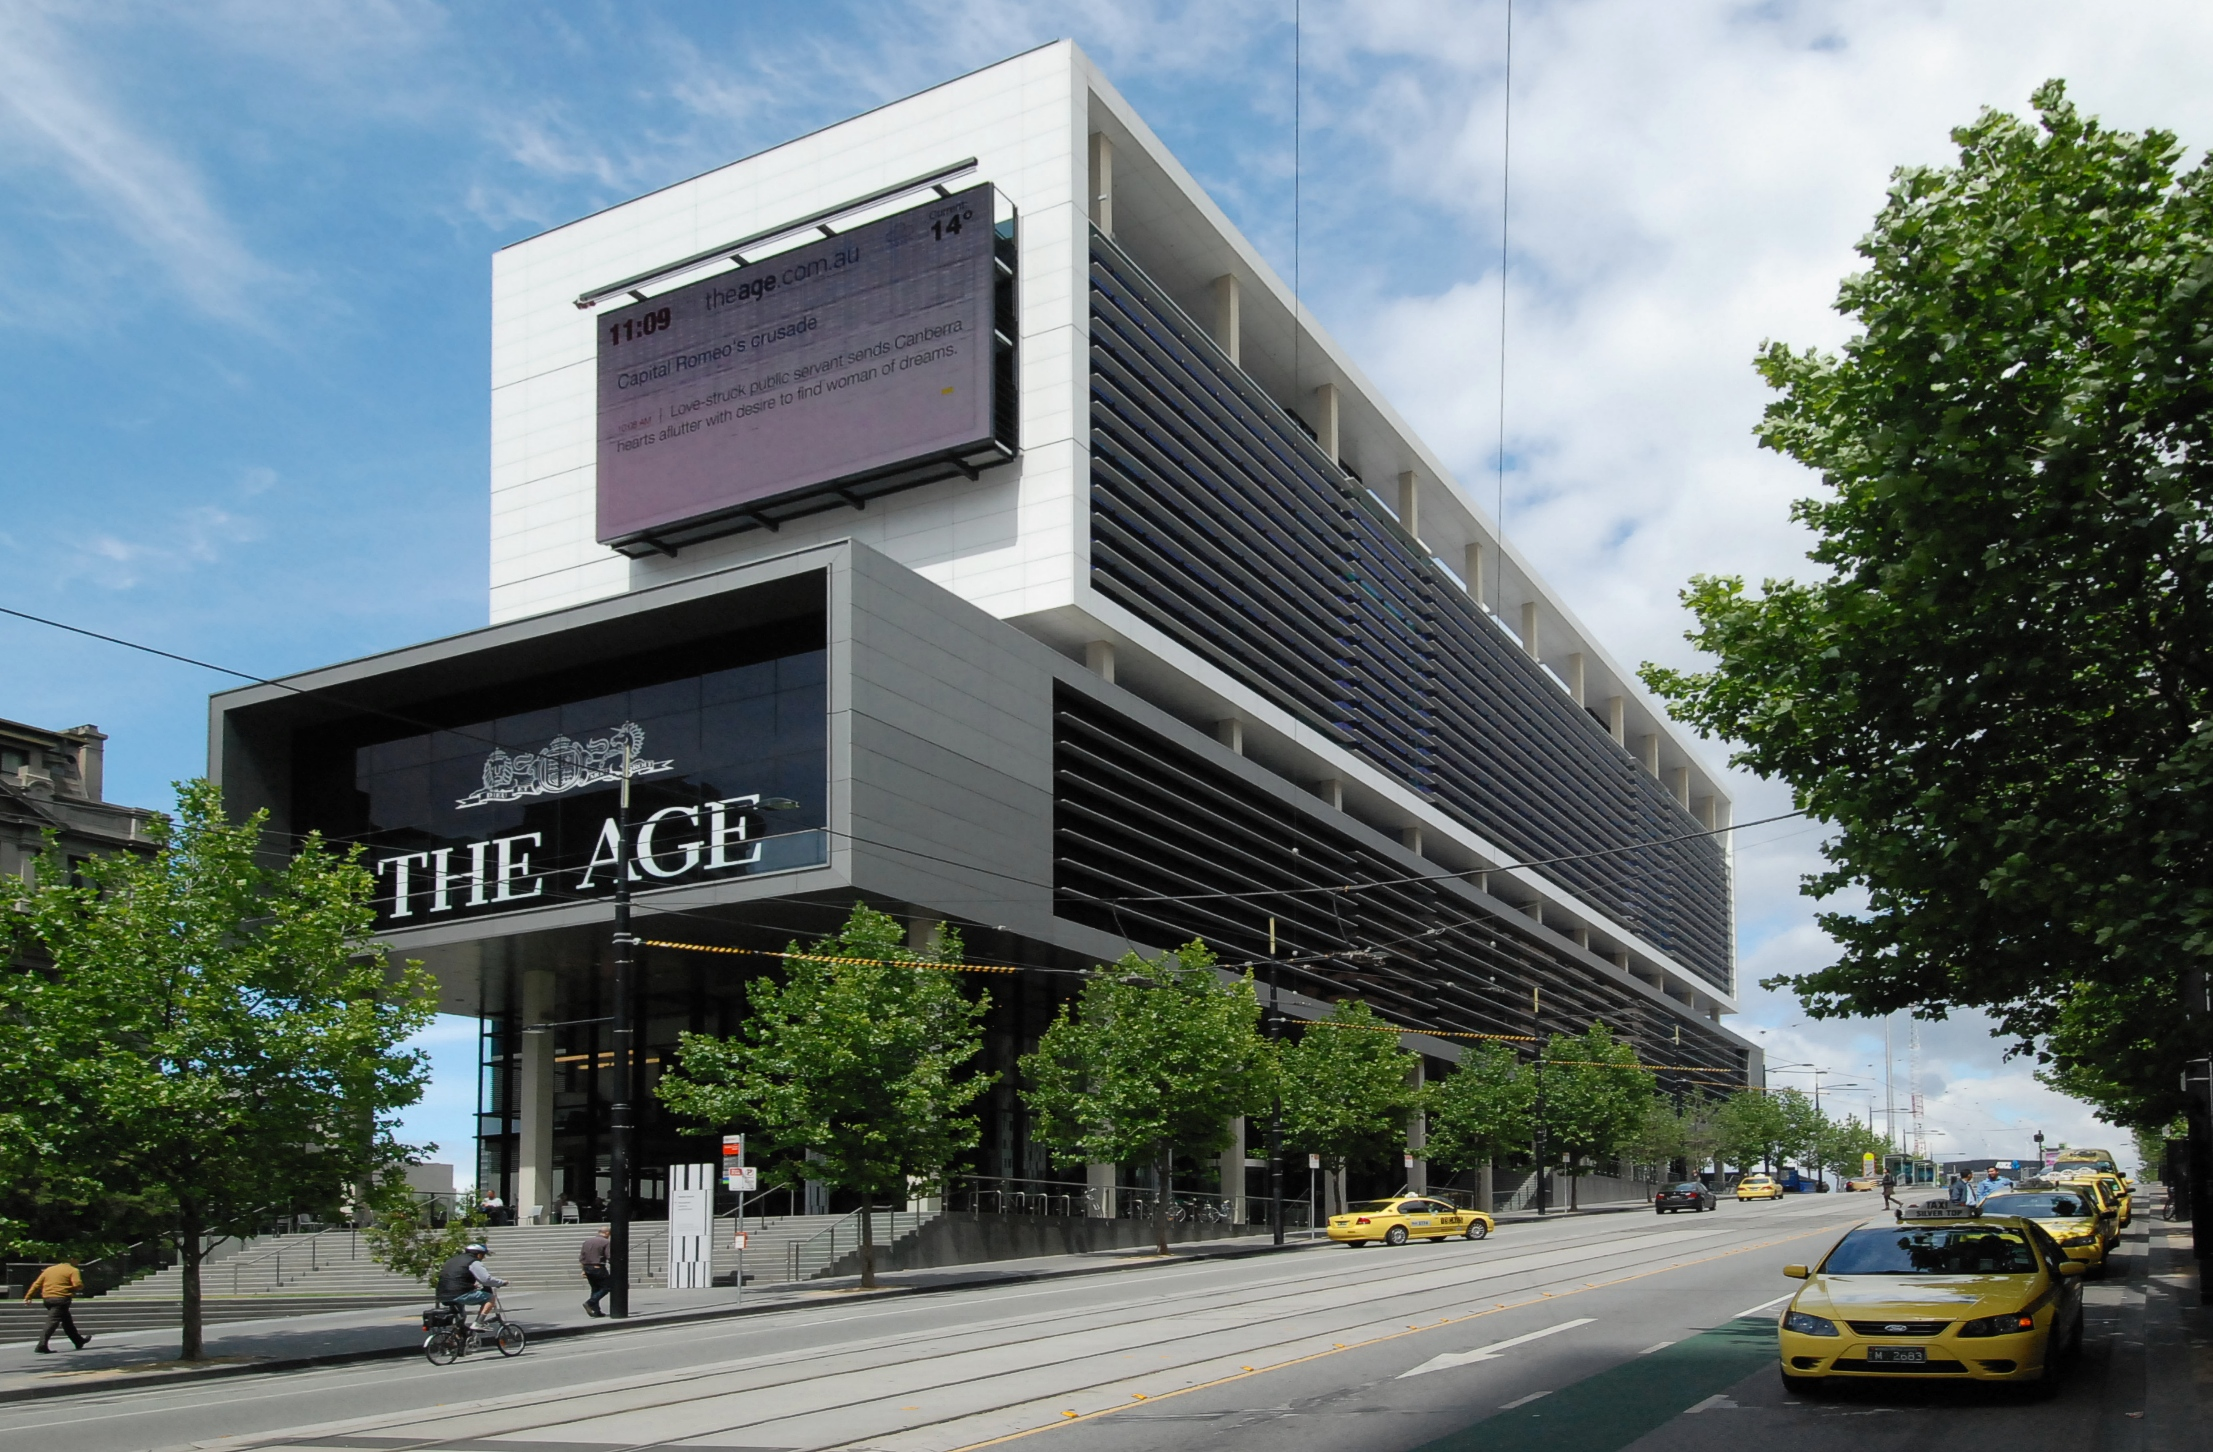 the age building